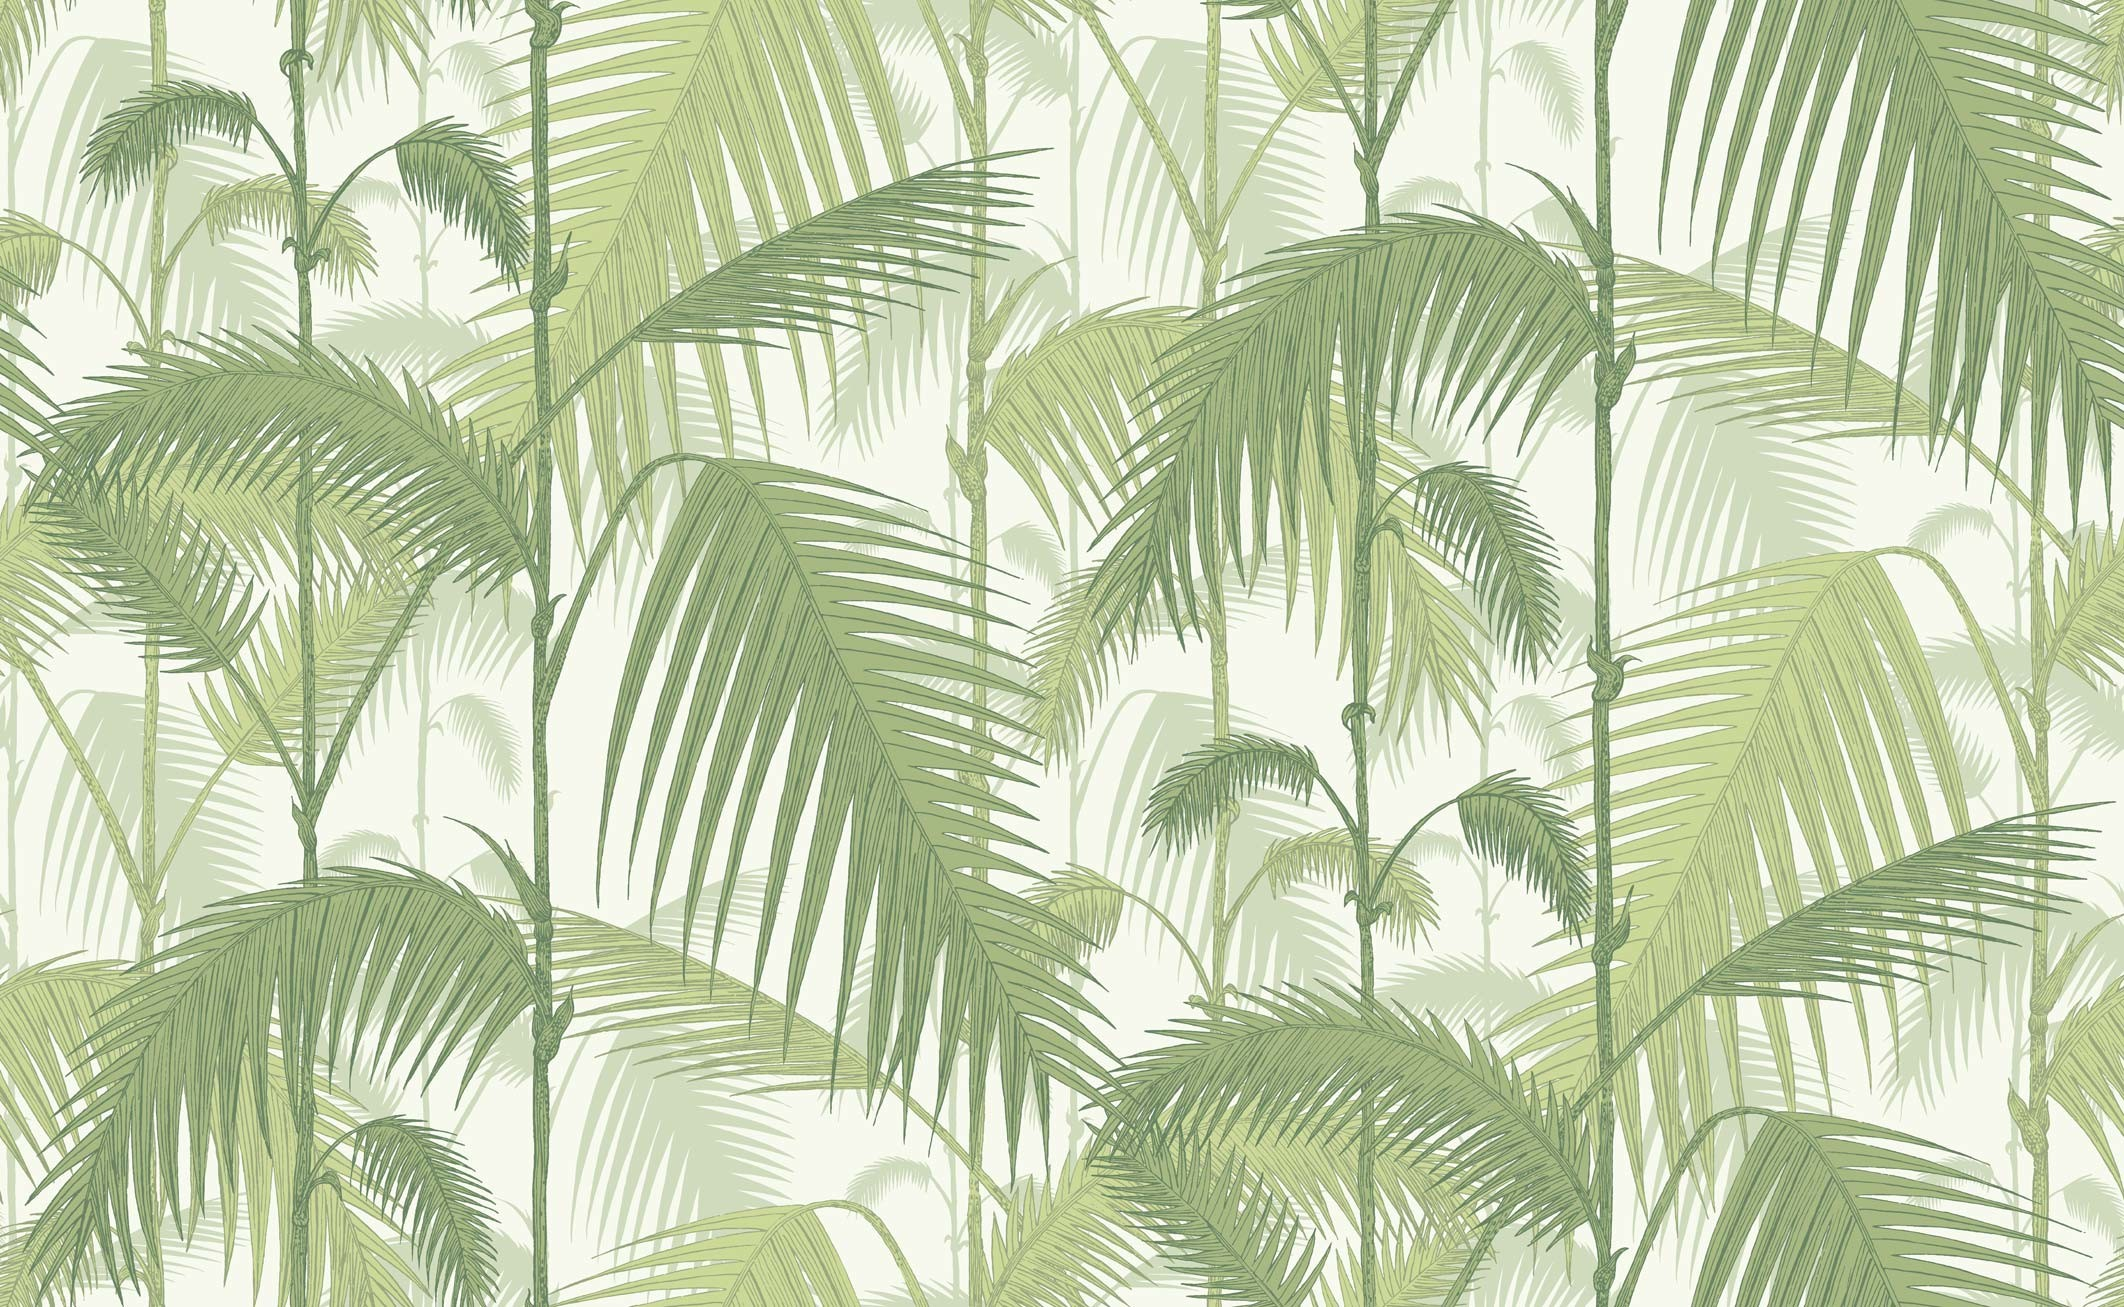 Res: 2124x1307, ... Palm Jungle wallpaper - Olive Green on White ...